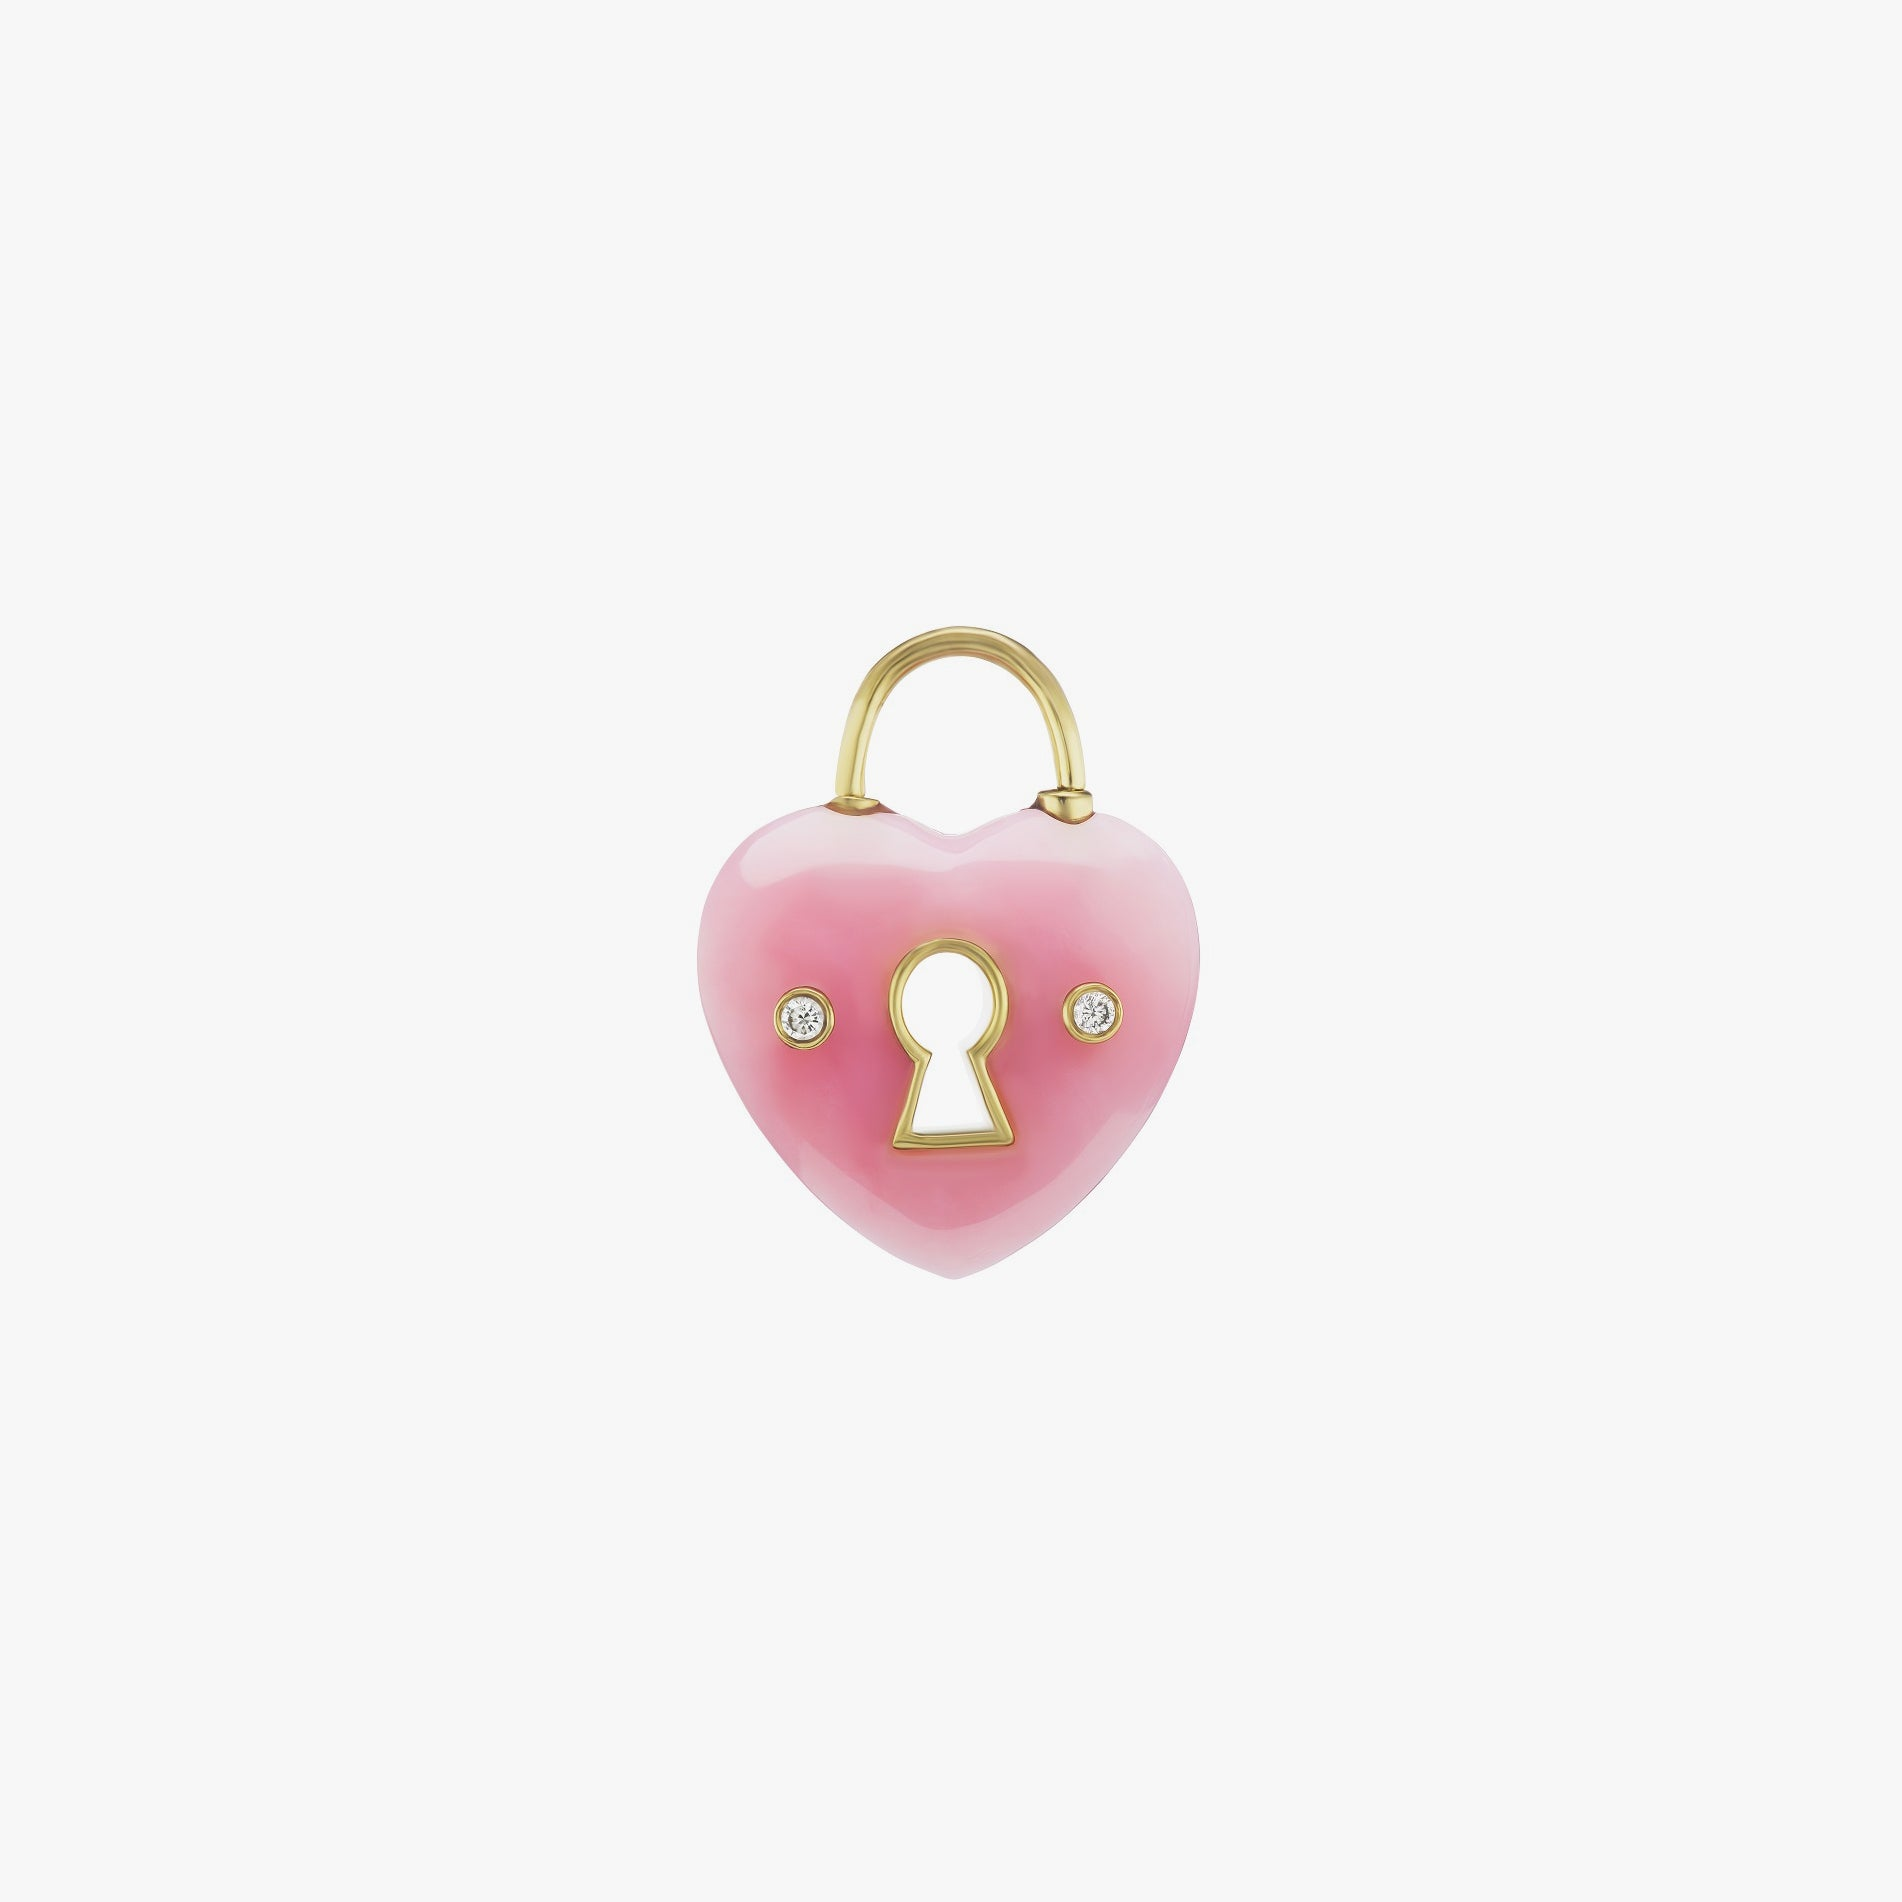 Rose Quartz Heart Charm